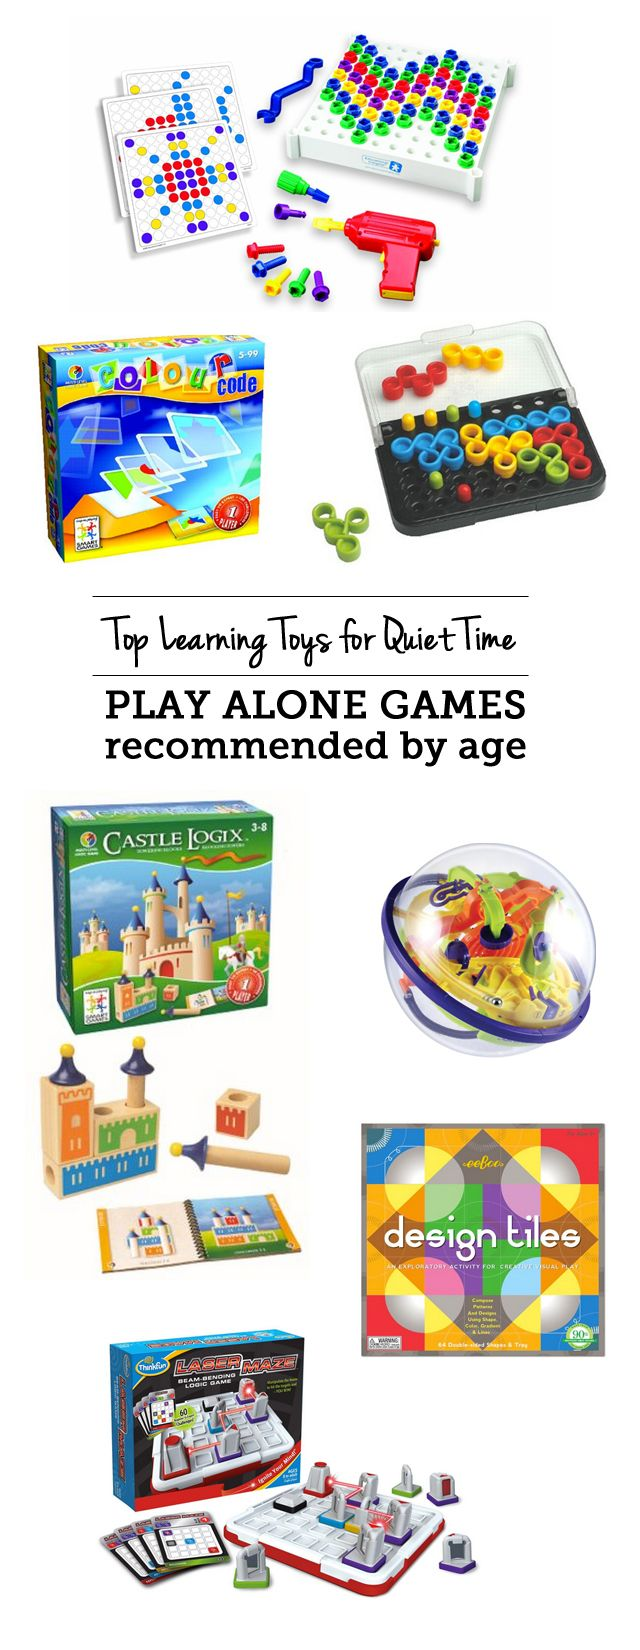 Best Play Alone Games, Top learning toys for quiet time - love that my kids are building brainpower with these while I get stuff done or have one-on-one time with their sibling.